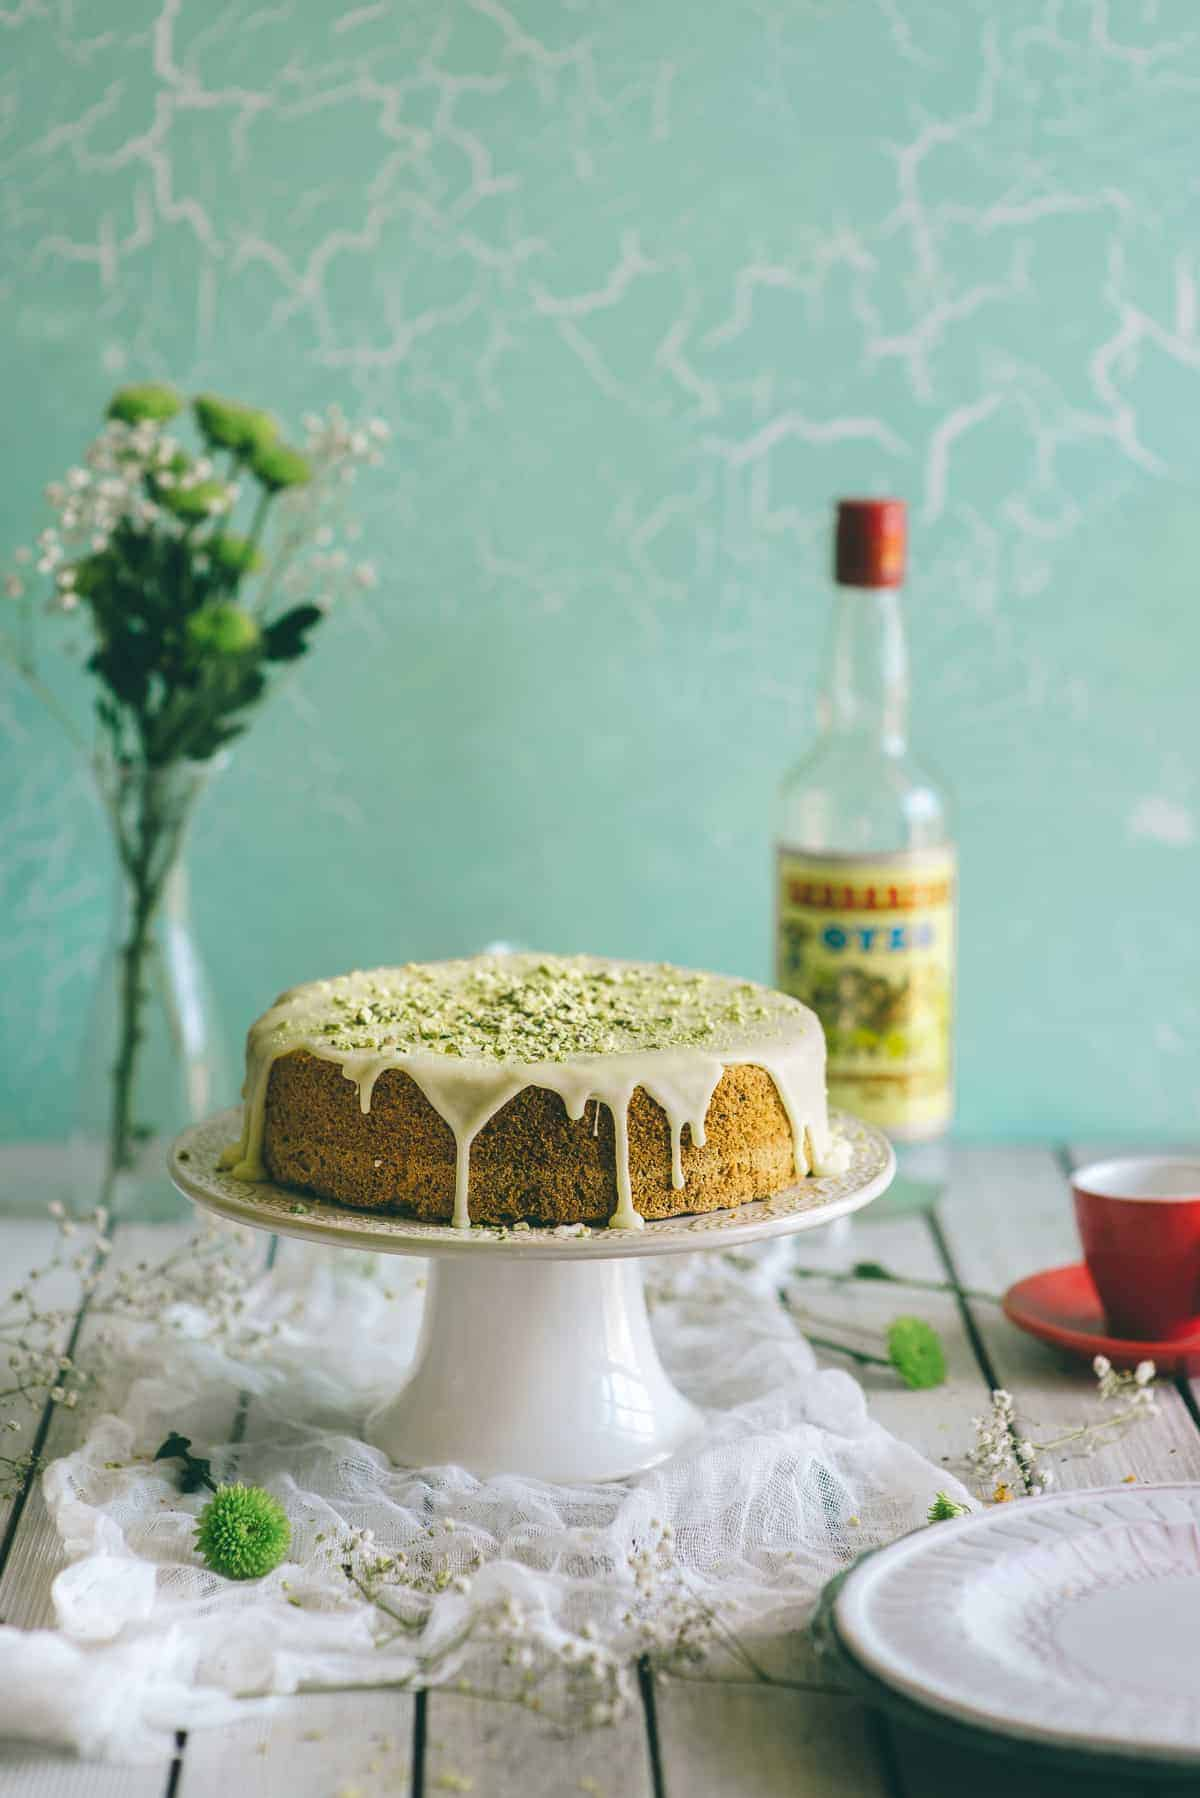 a cake flavoured with ouzo and pistachios. It is covered in a thick orange flavoured icing